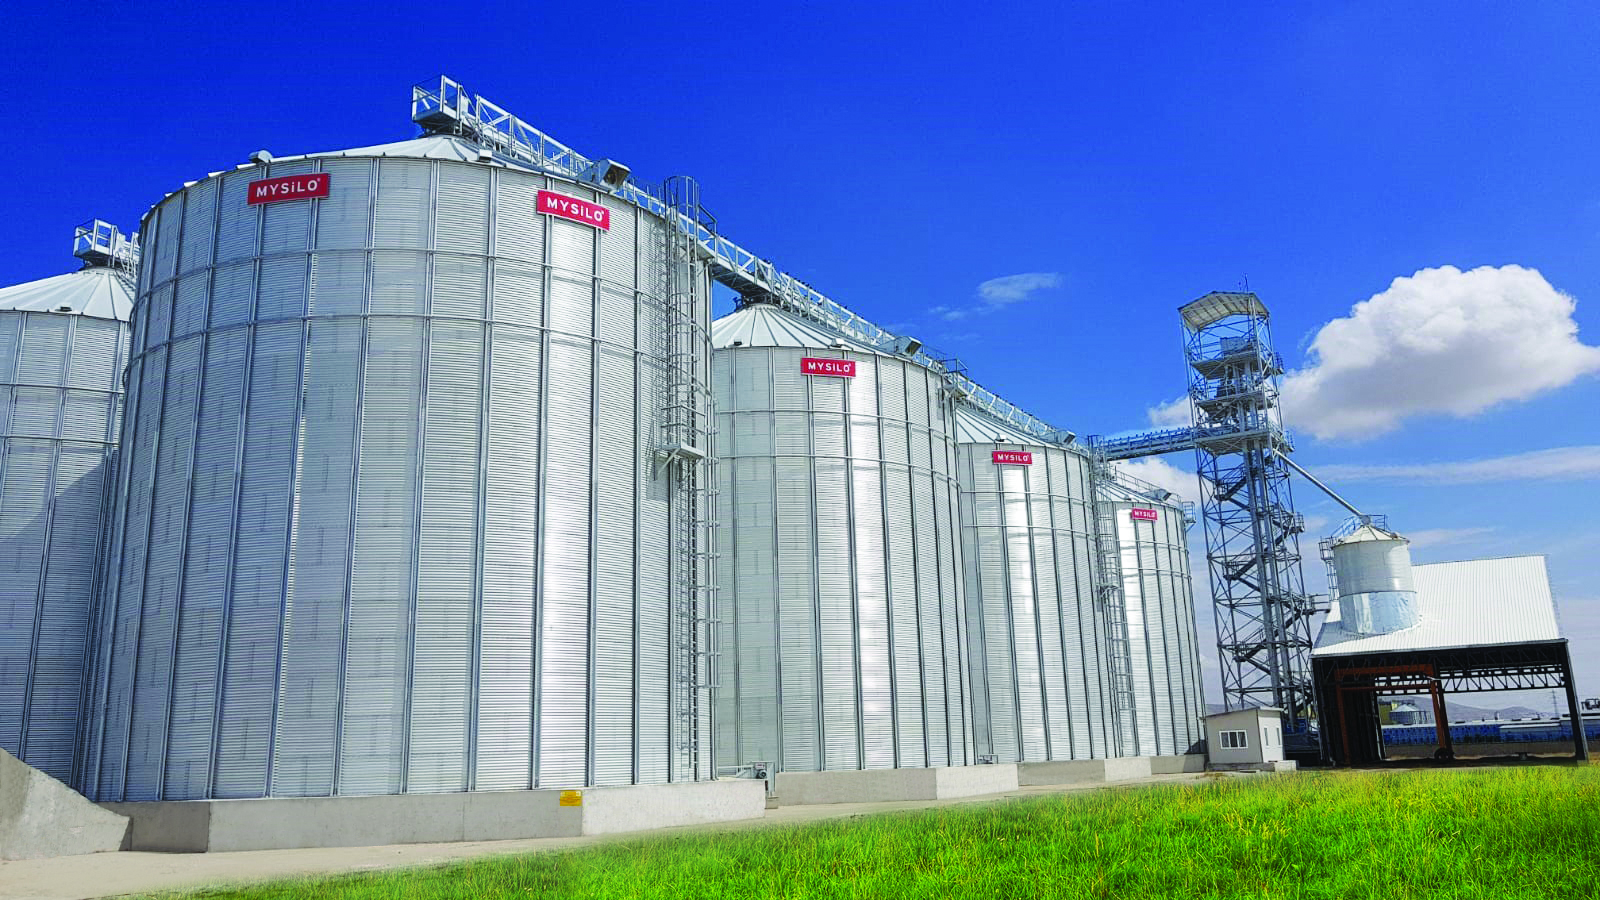 THE UNIQUE SILO MANUFACTURER FIRM IN THE EUROPE PROVIDING TURN-KEY SOLUTIONS